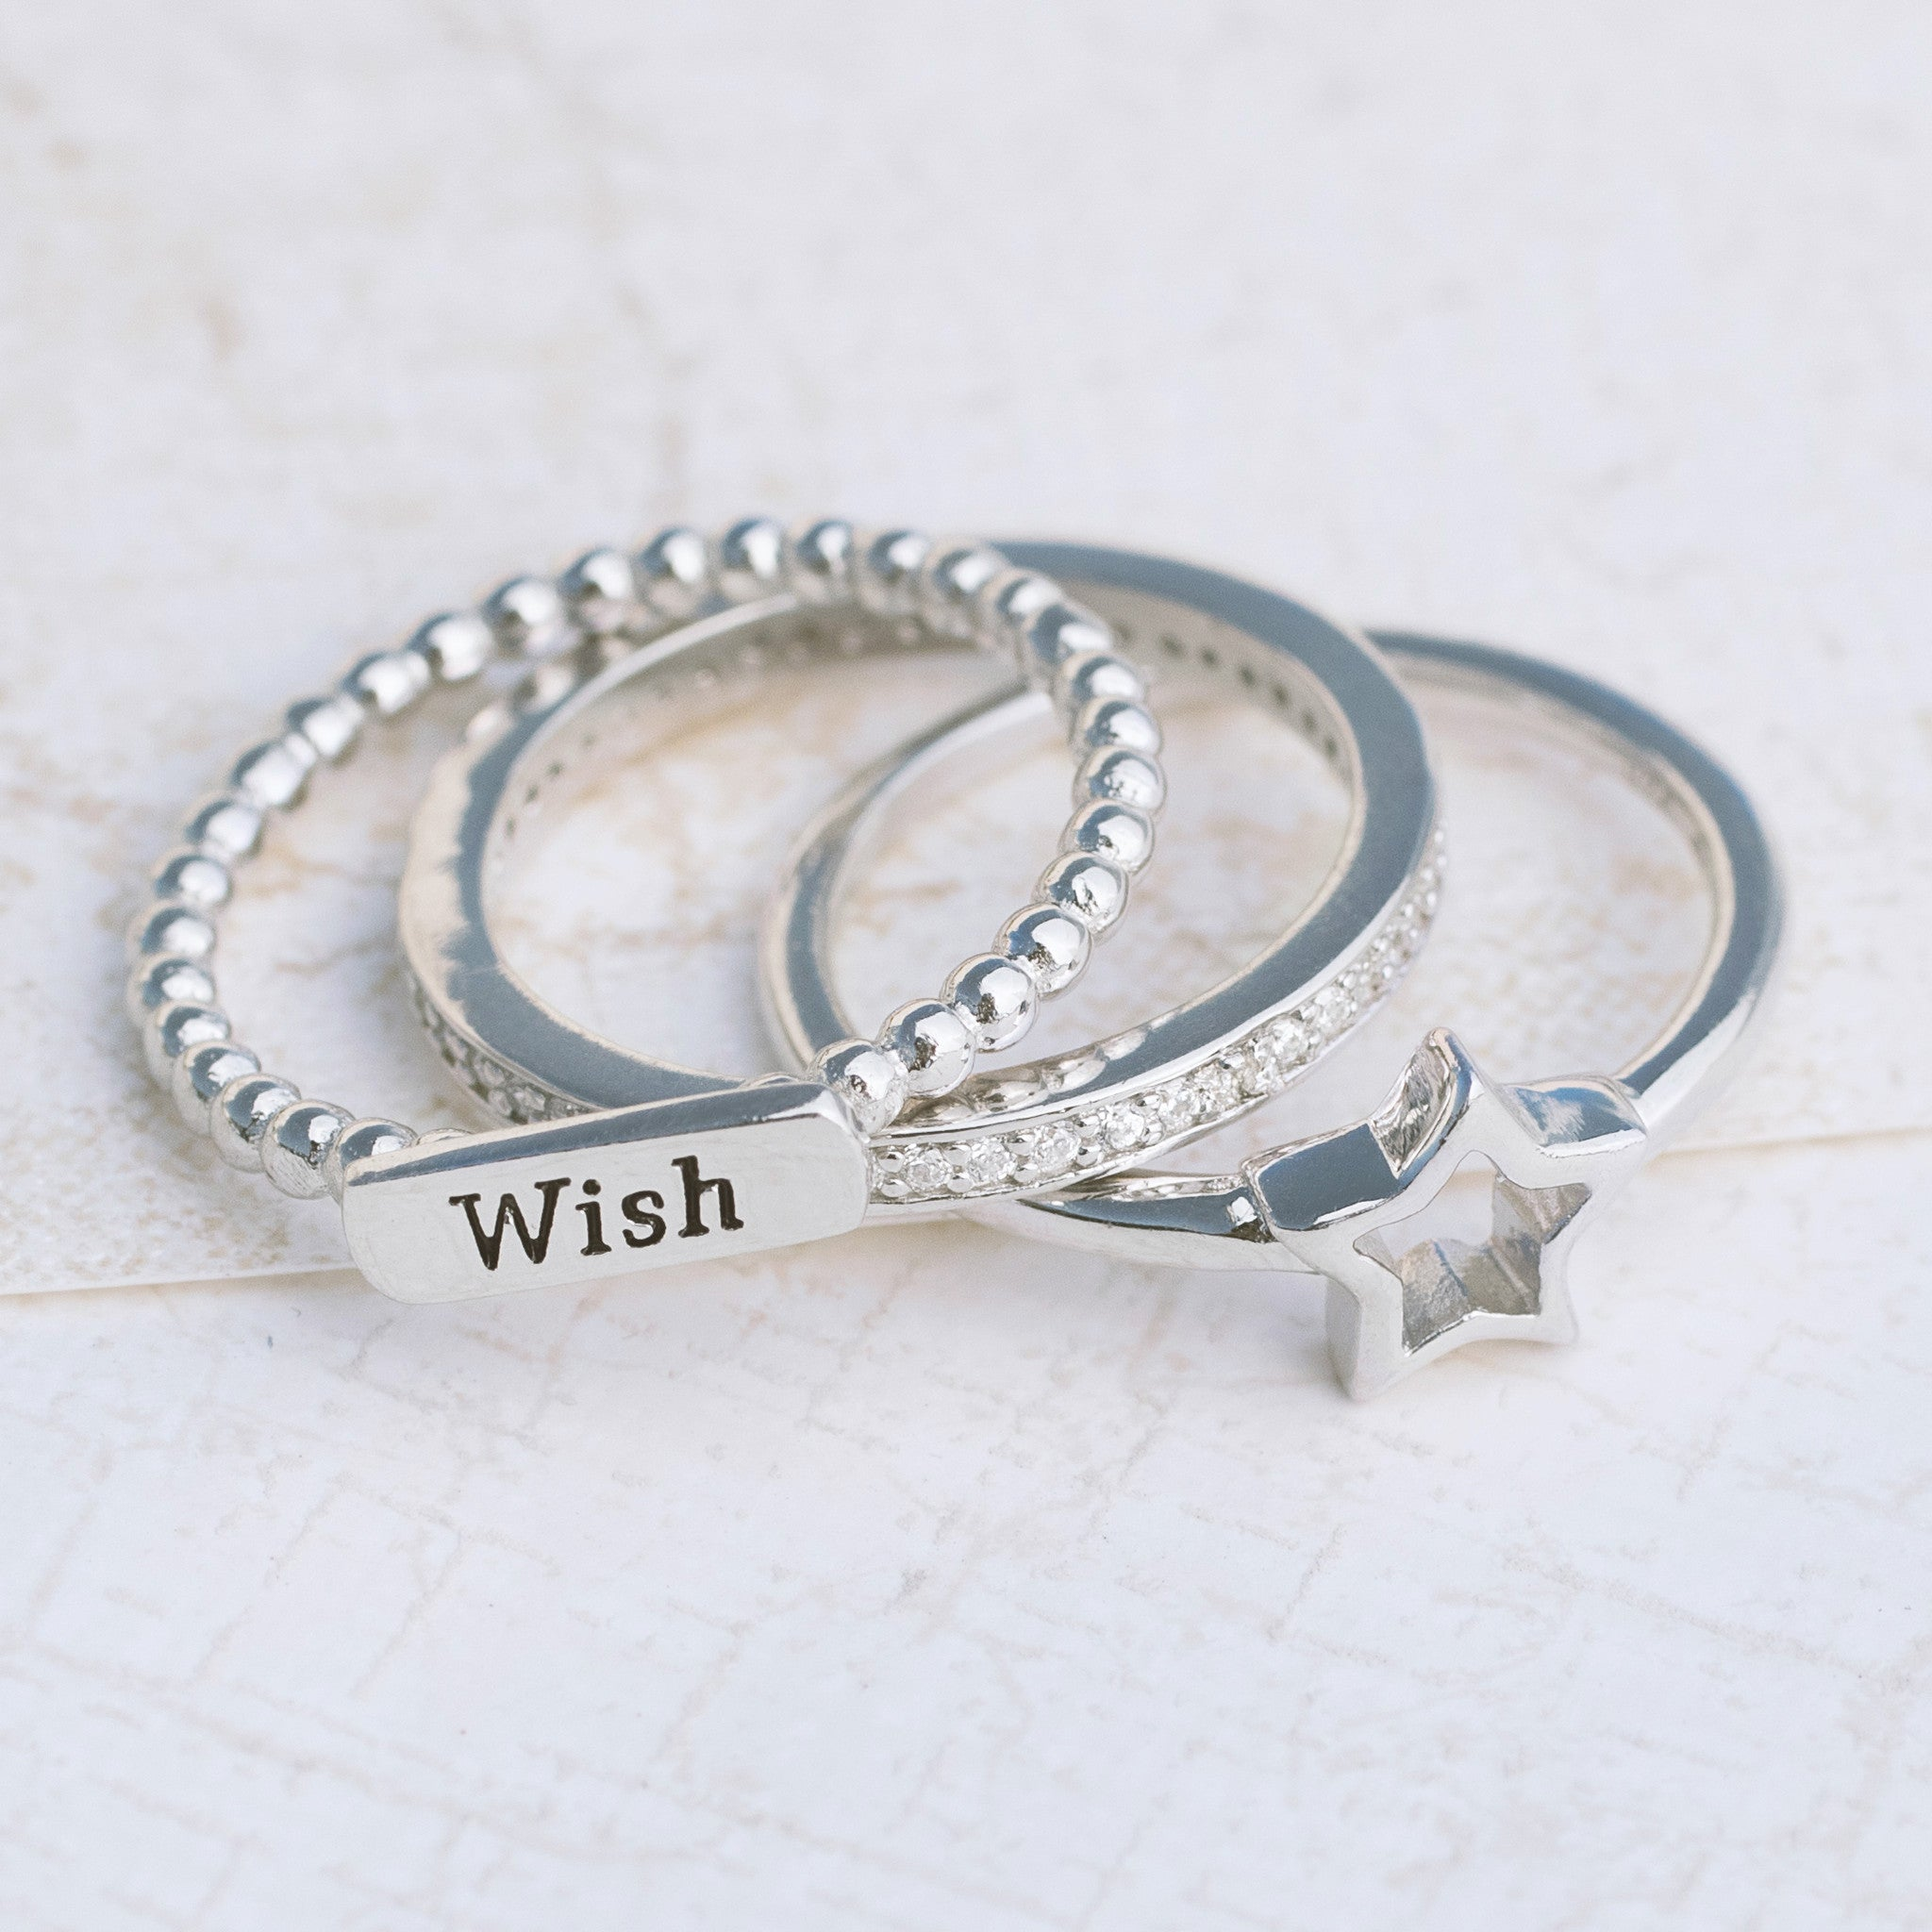 Make a Wish Sterling Silver Ring Set